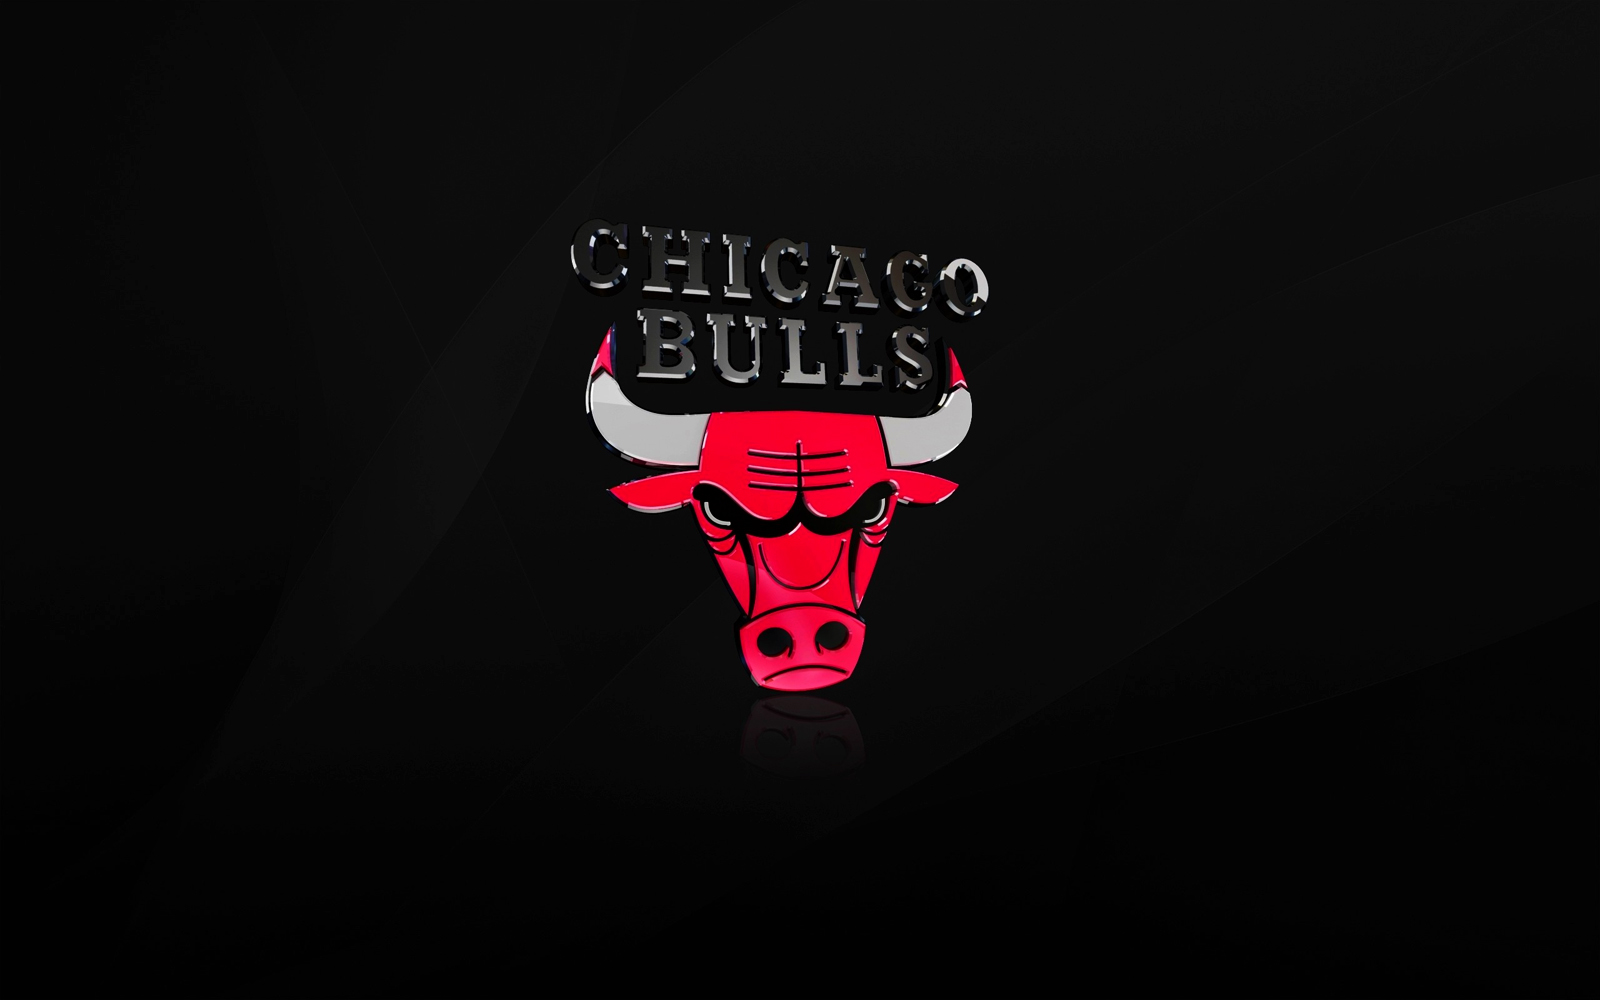 bulls wallpaper hd - wallpapersafari